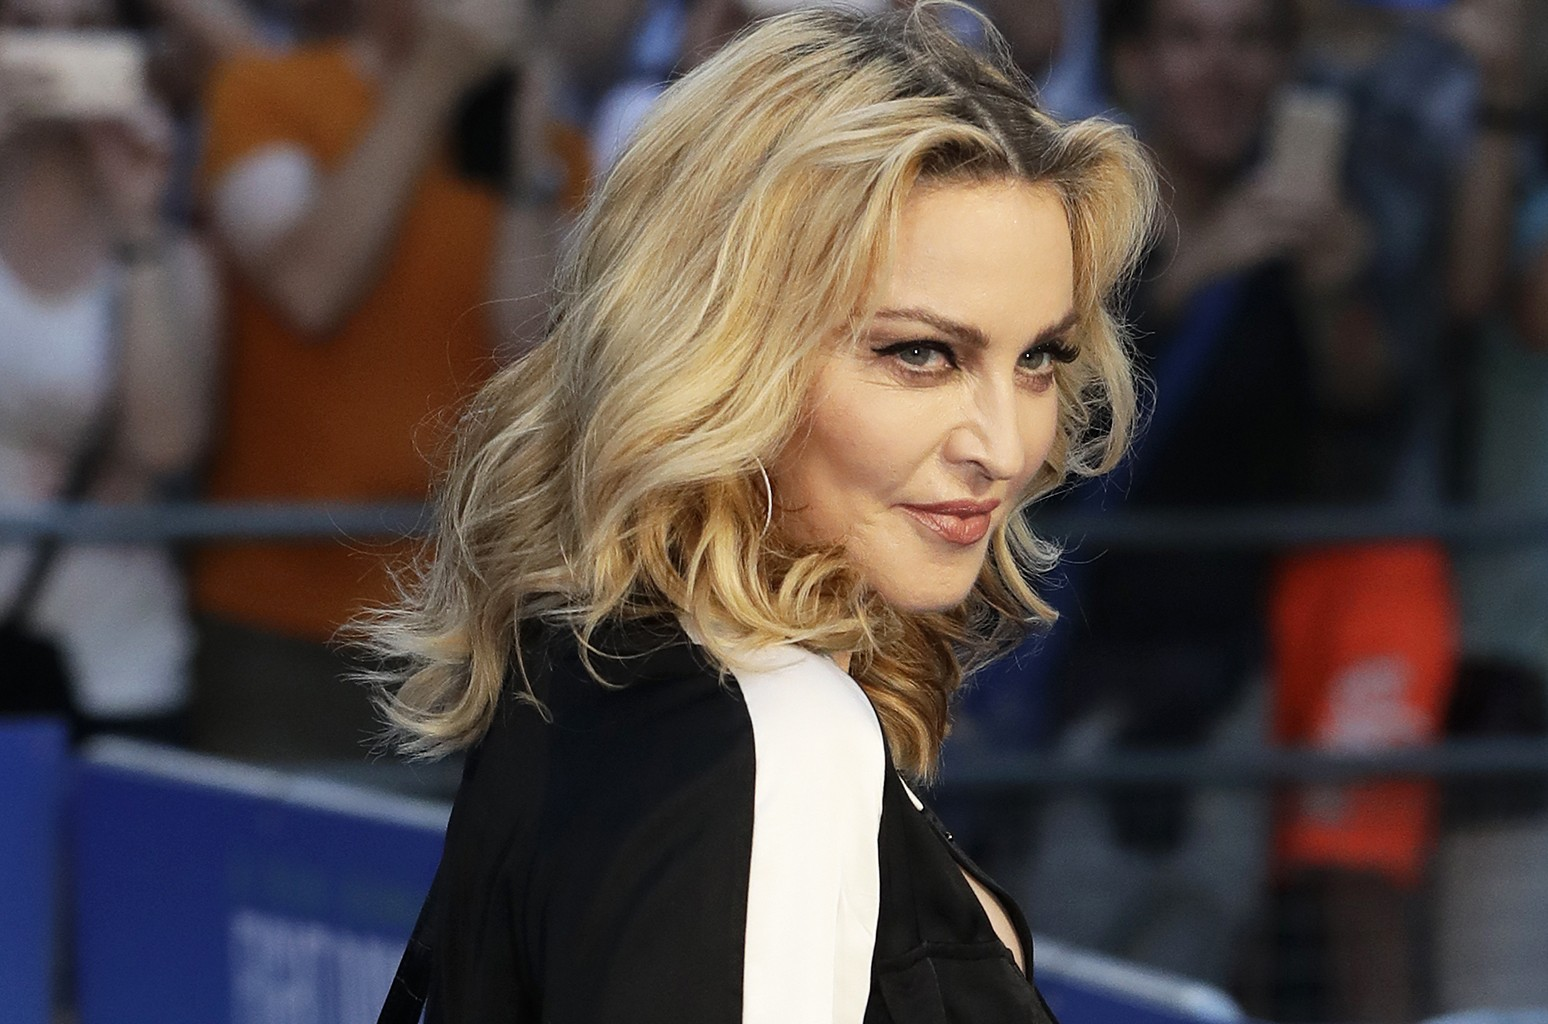 Madonna in 2016